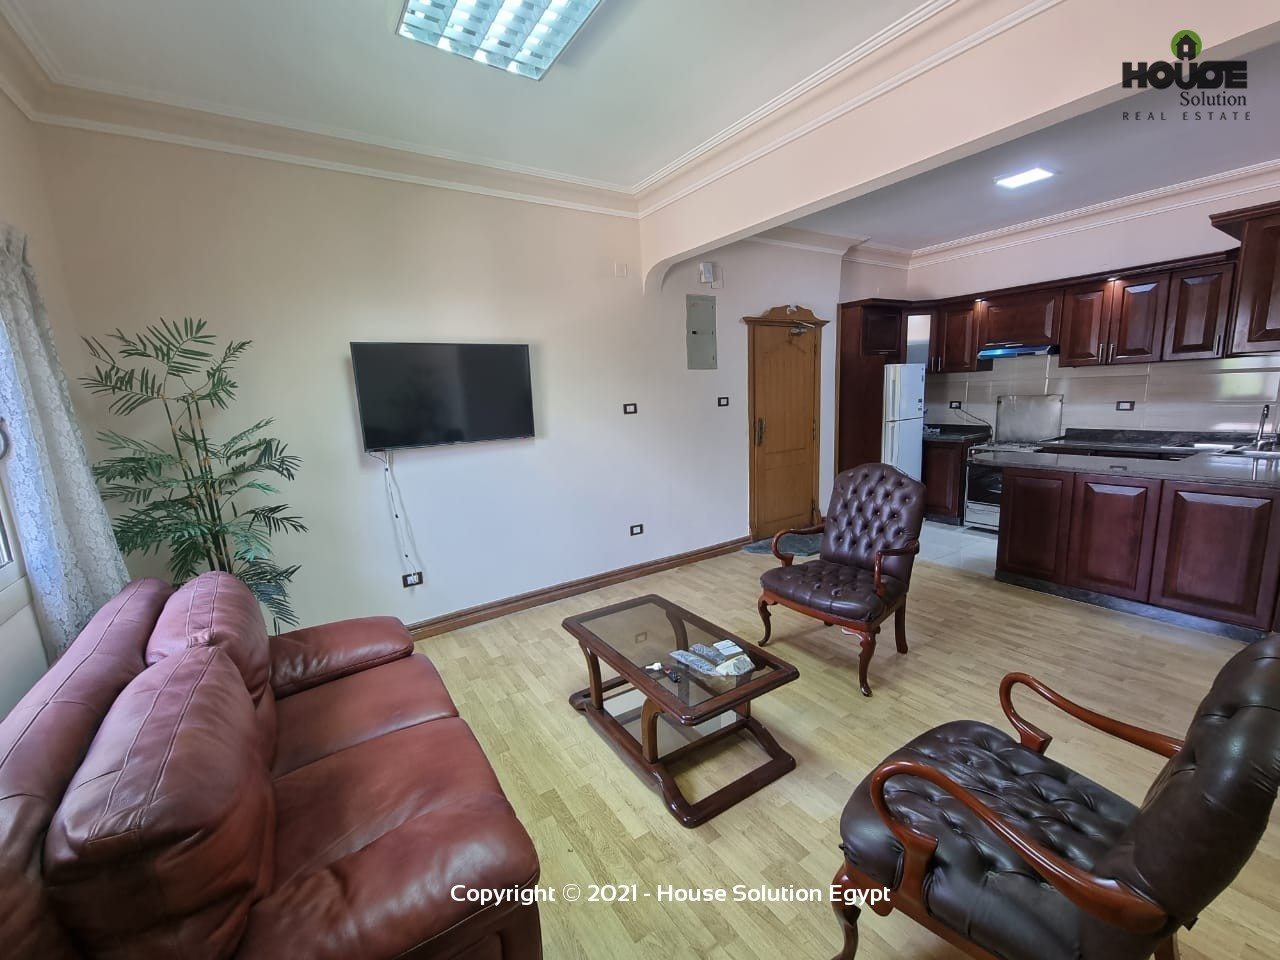 Comfy Modern Furnished Apartment For Rent In Sarayat El Maadi Egypt - 5027 Featured Image